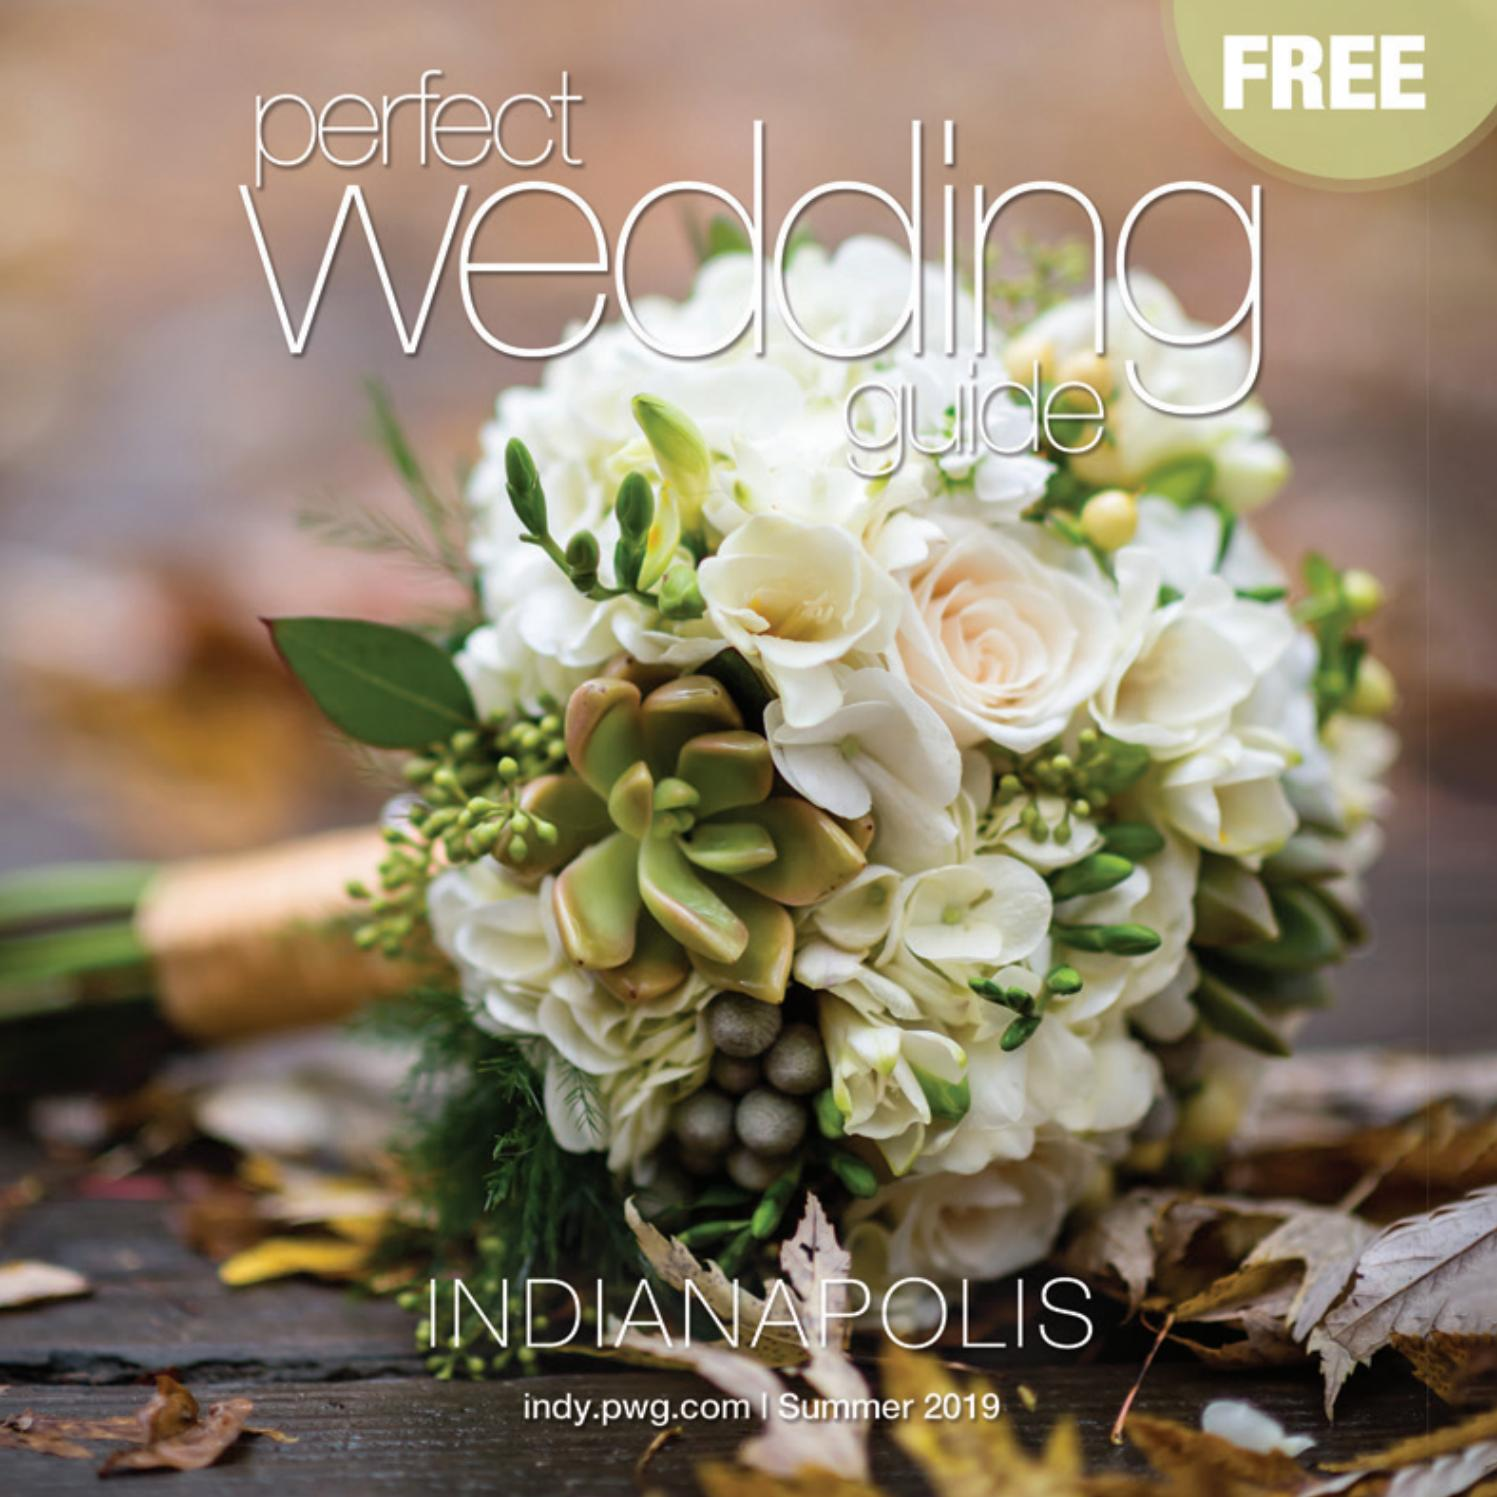 Perfect Wedding Guide Indianapolis Summer 2019 By Jeremy Bowman